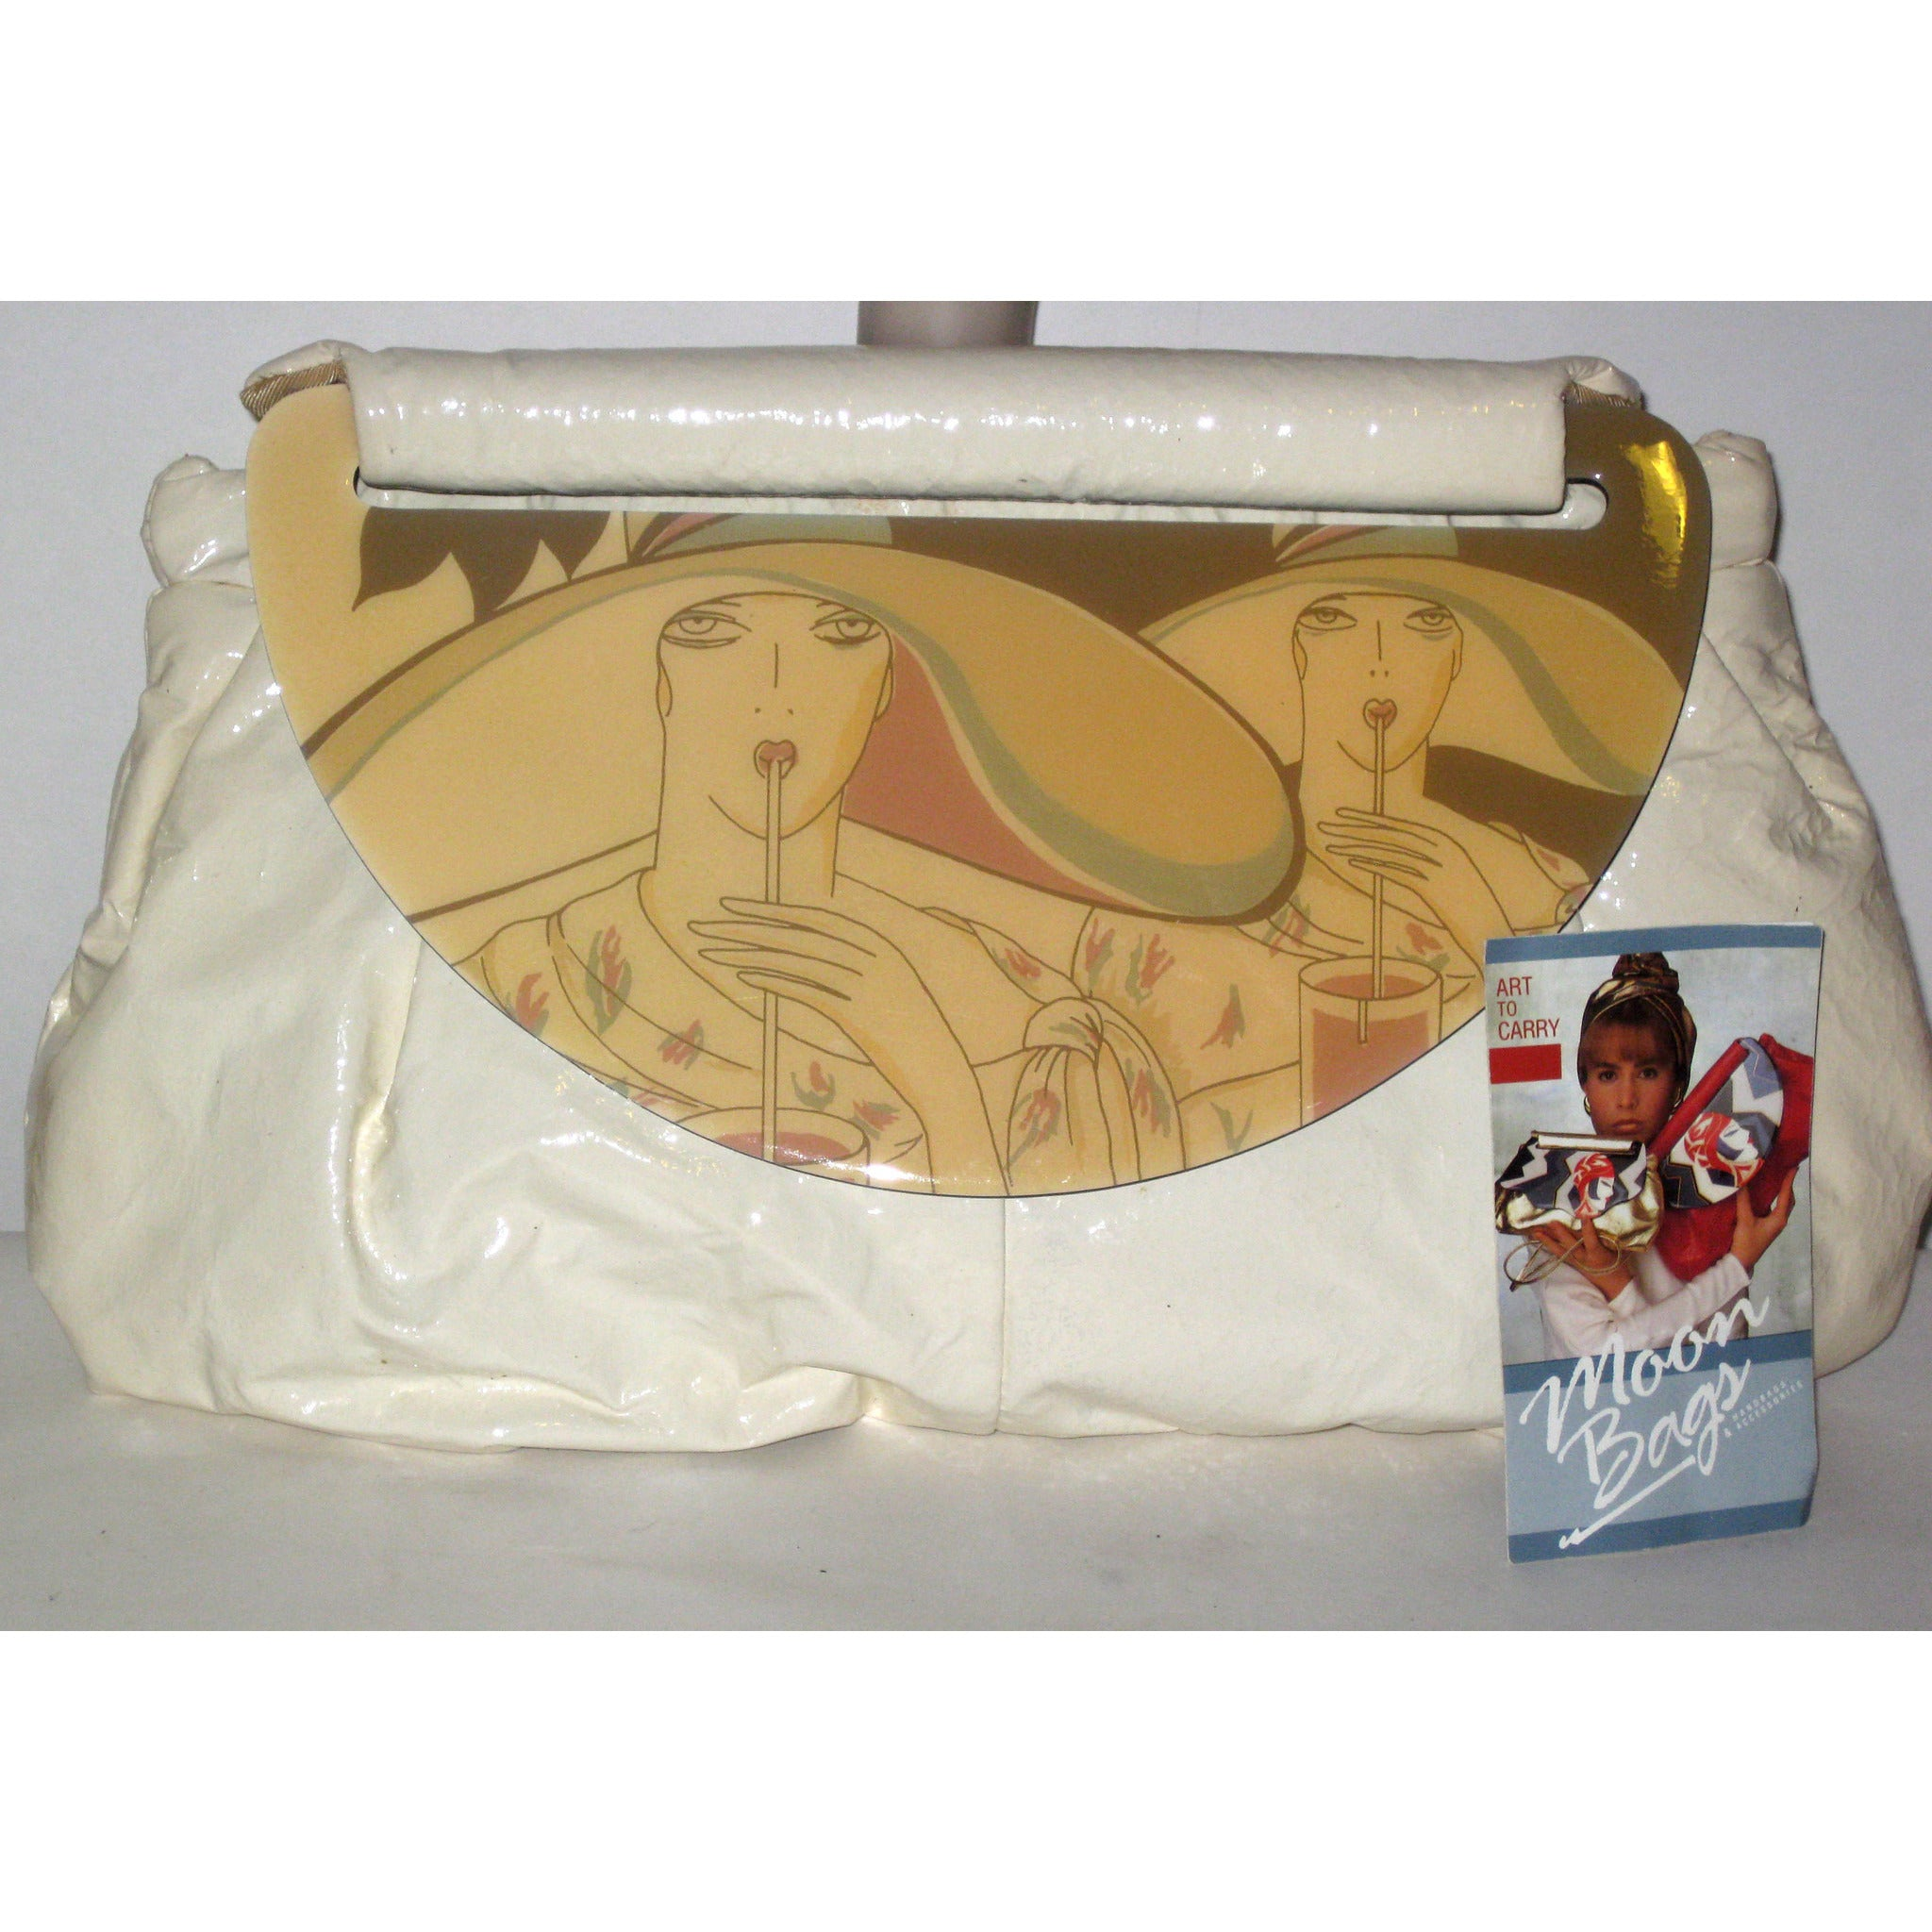 Vintage Cream High Gloss Moon Bag Purse By Patrica Smith - 1980's